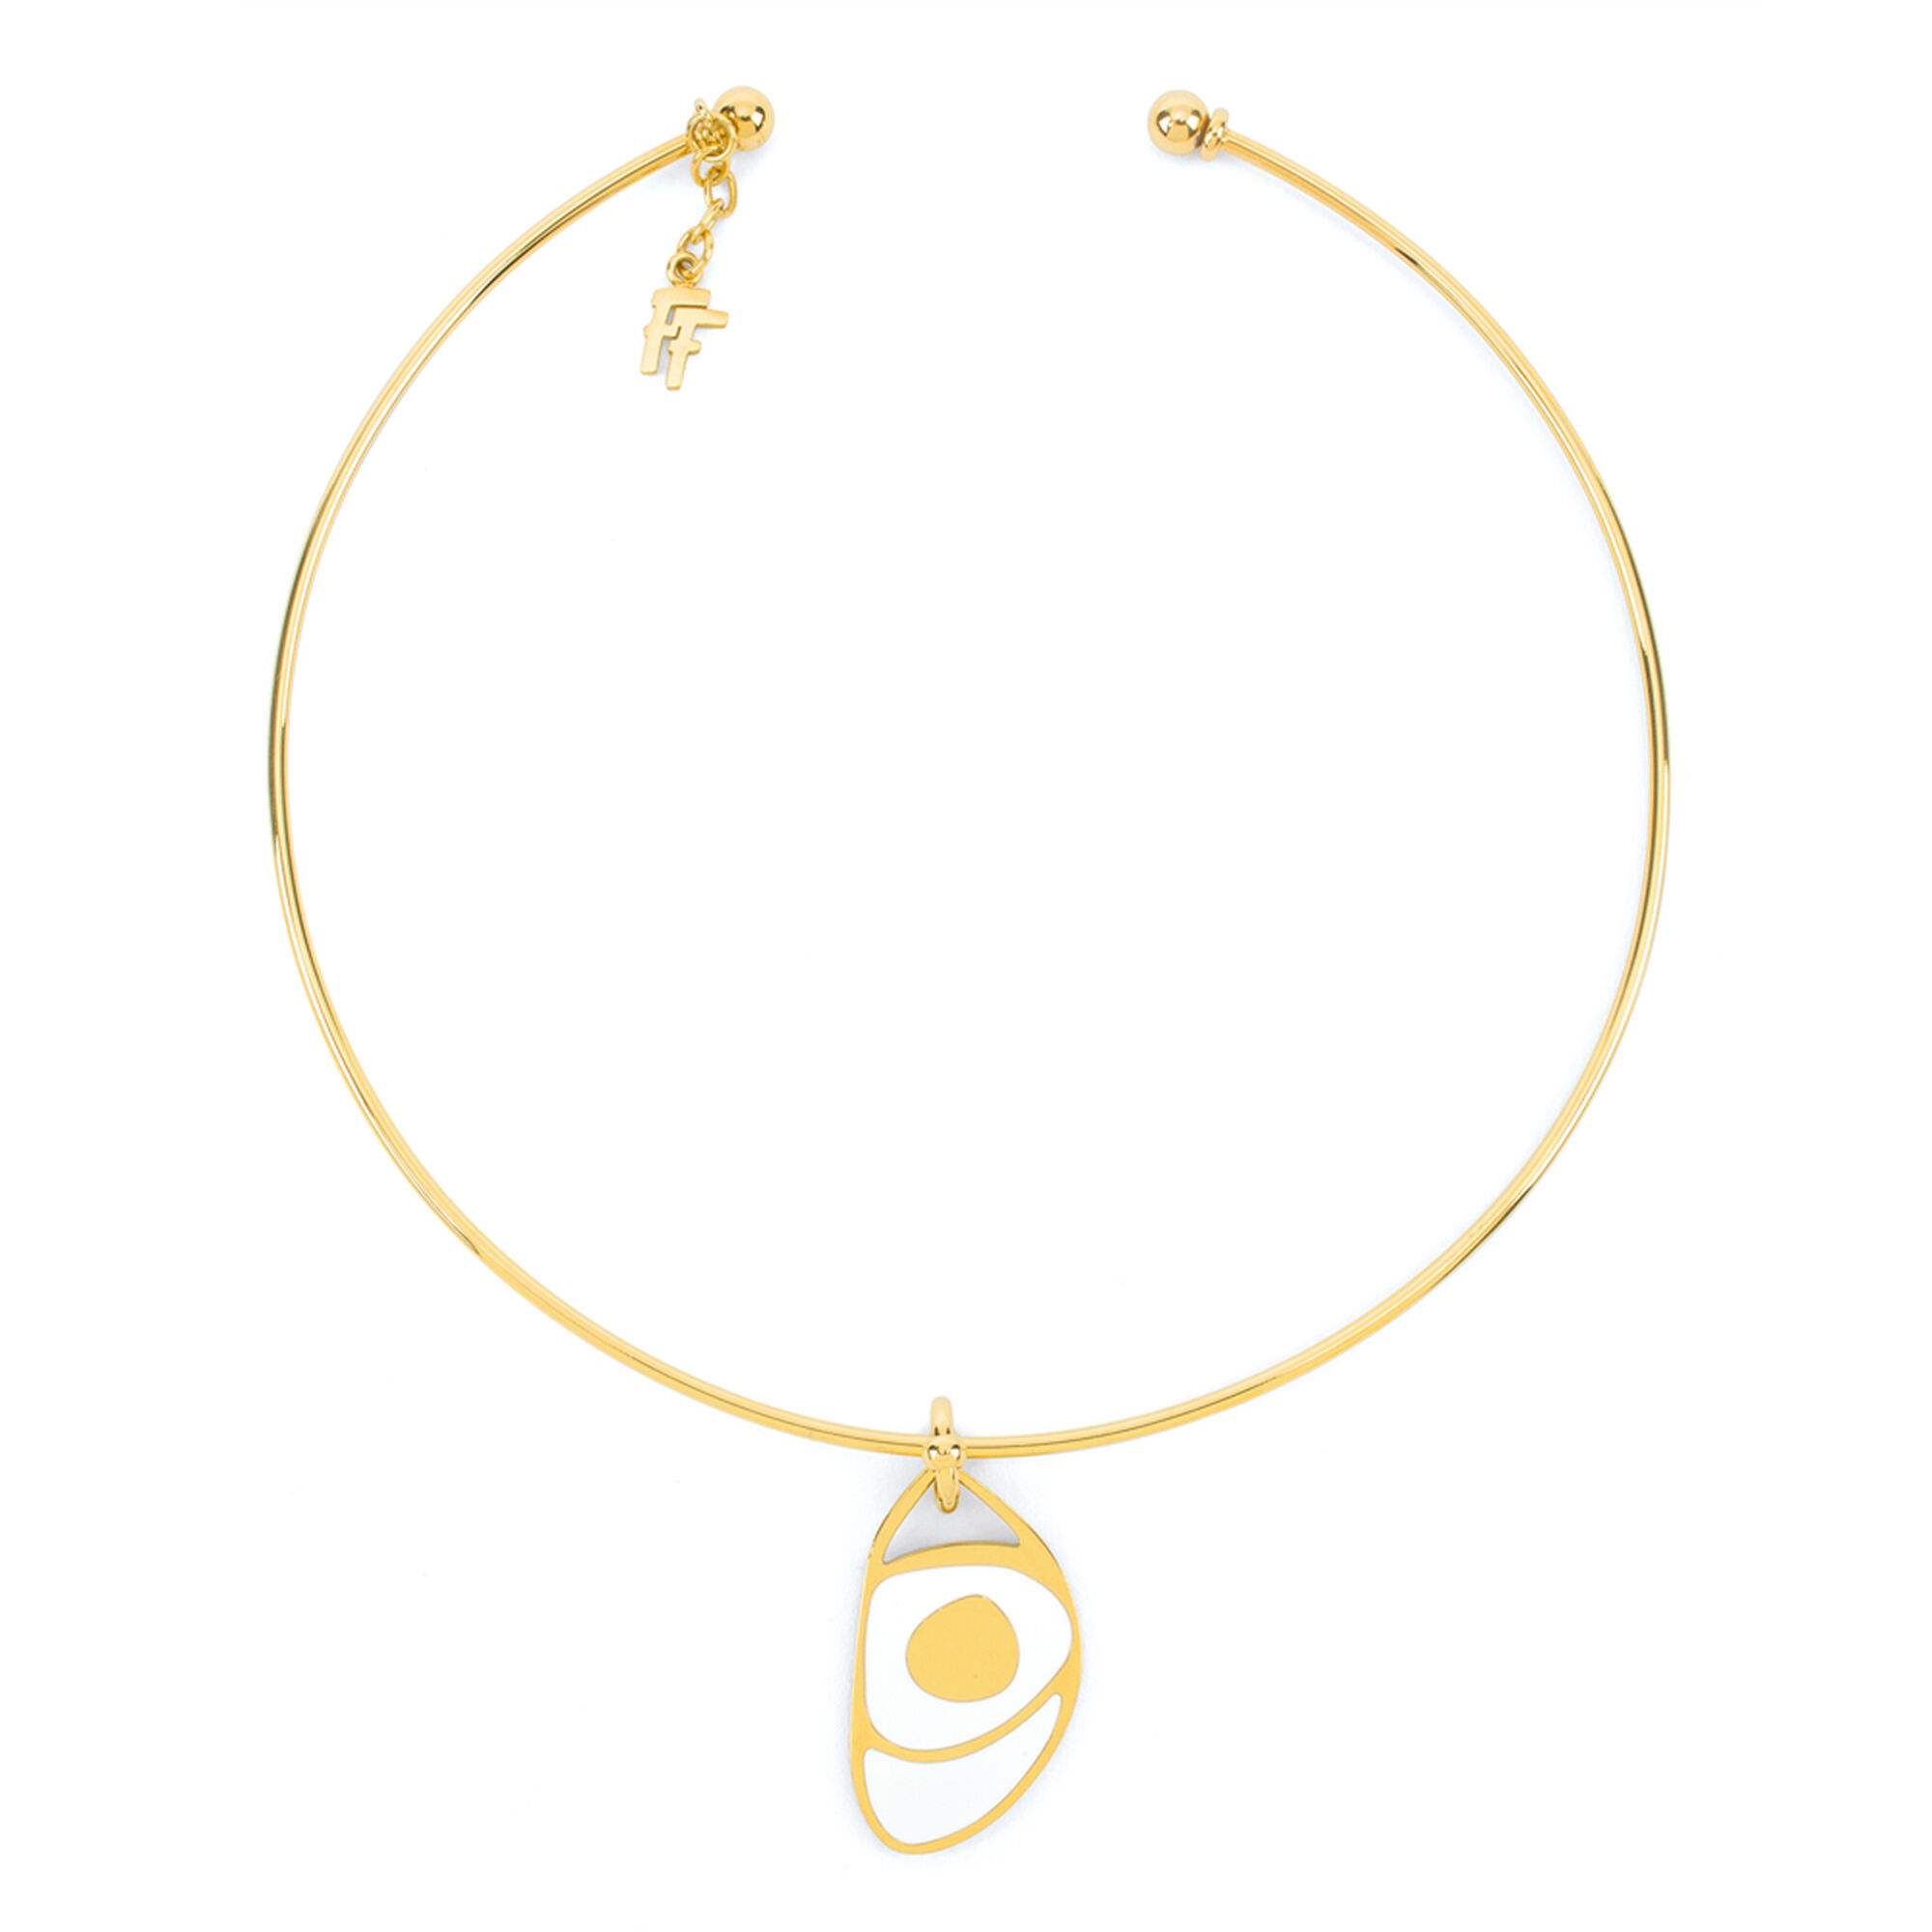 sale enamel necklace g double for id master necklaces gucci pendant at gold jewelry j